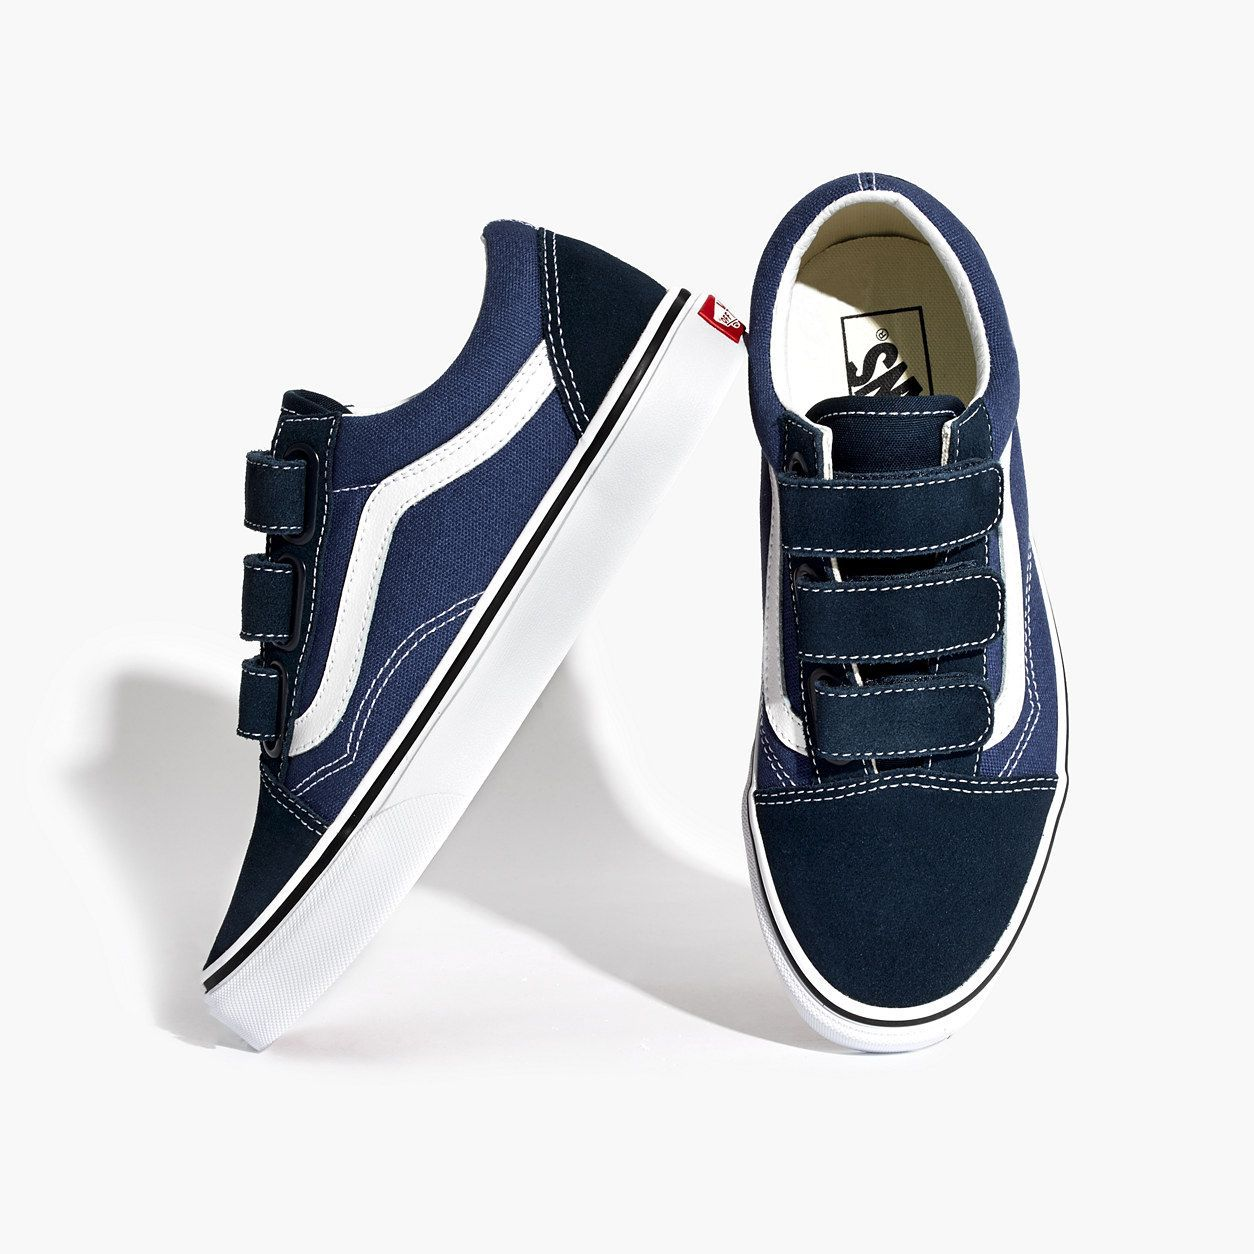 f550159e3db Madewell Womens Vans Unisex Old Skool Velcro Sneakers (Size 6.5 M ...